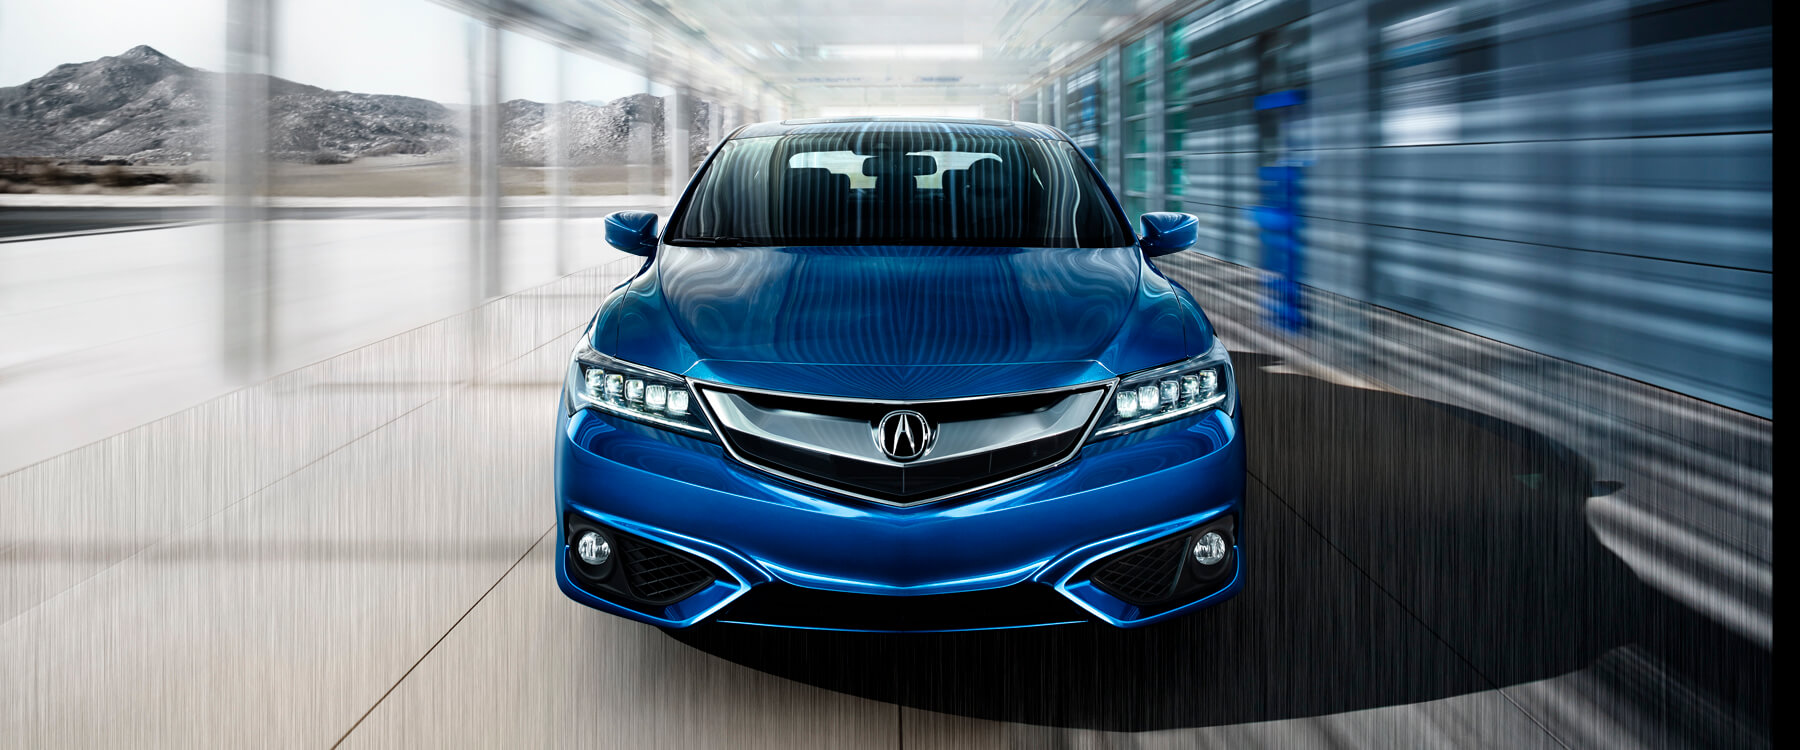 Acura Wins Against Audi For Features Luxury Safety And More